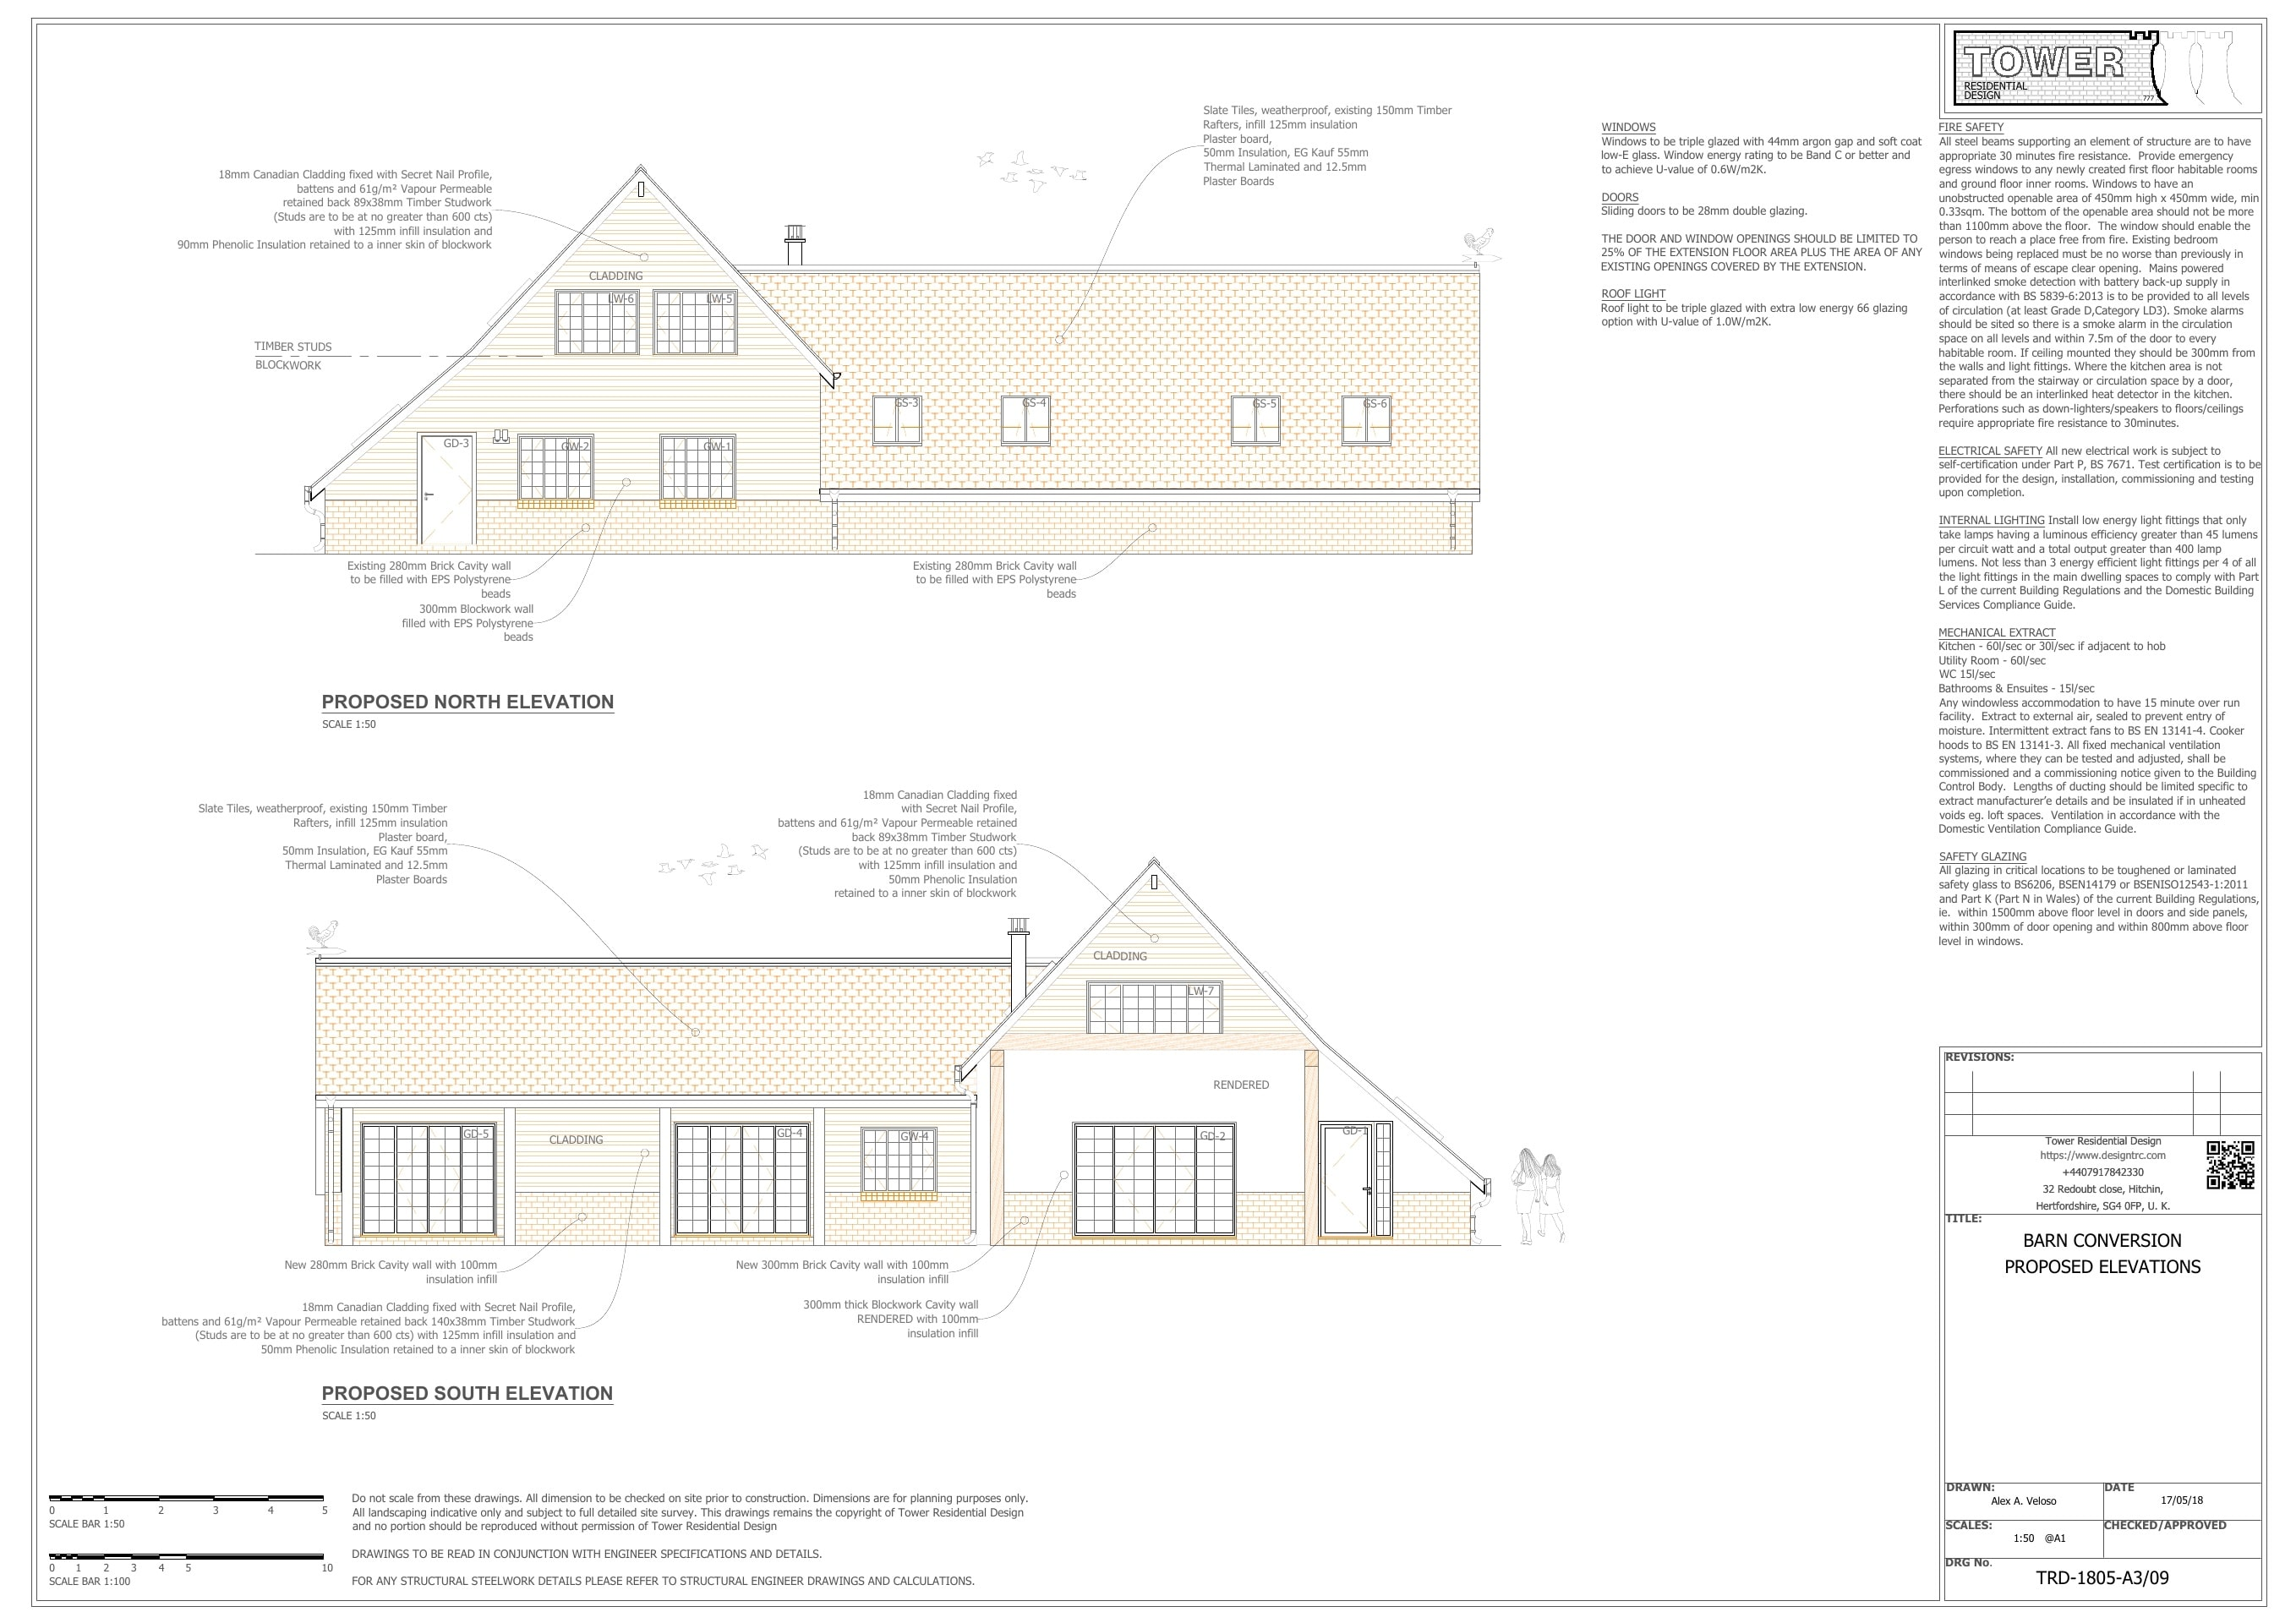 Buildign Regulation - Barn Conversion Cross Sections